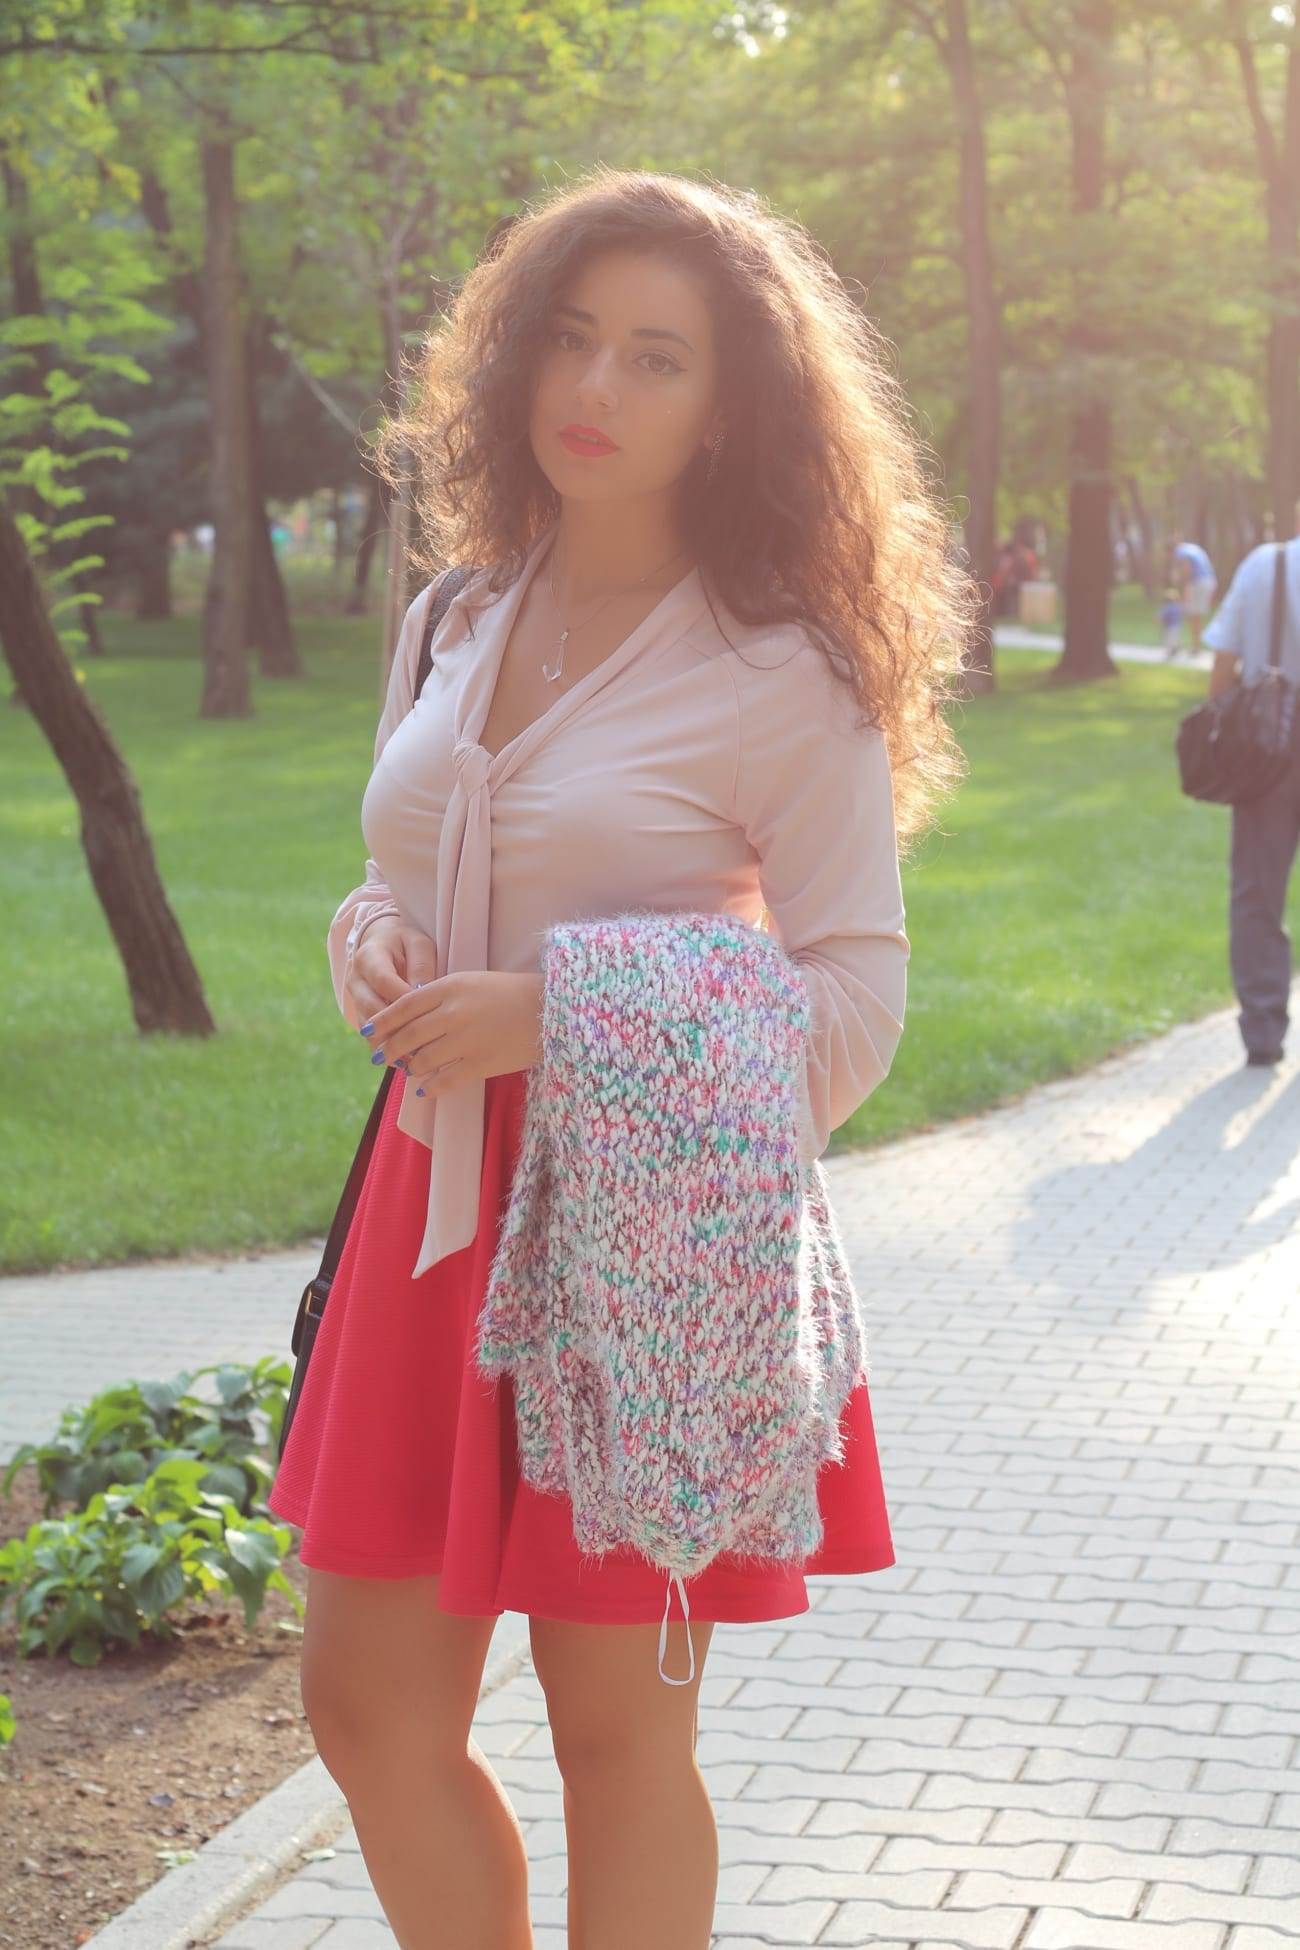 reserved-timis-roxi-rose-fashion-blogger-romania-shopping-city-timisoara-concurs-back-to-office-outfit-transitional-idei-news-stiri-18